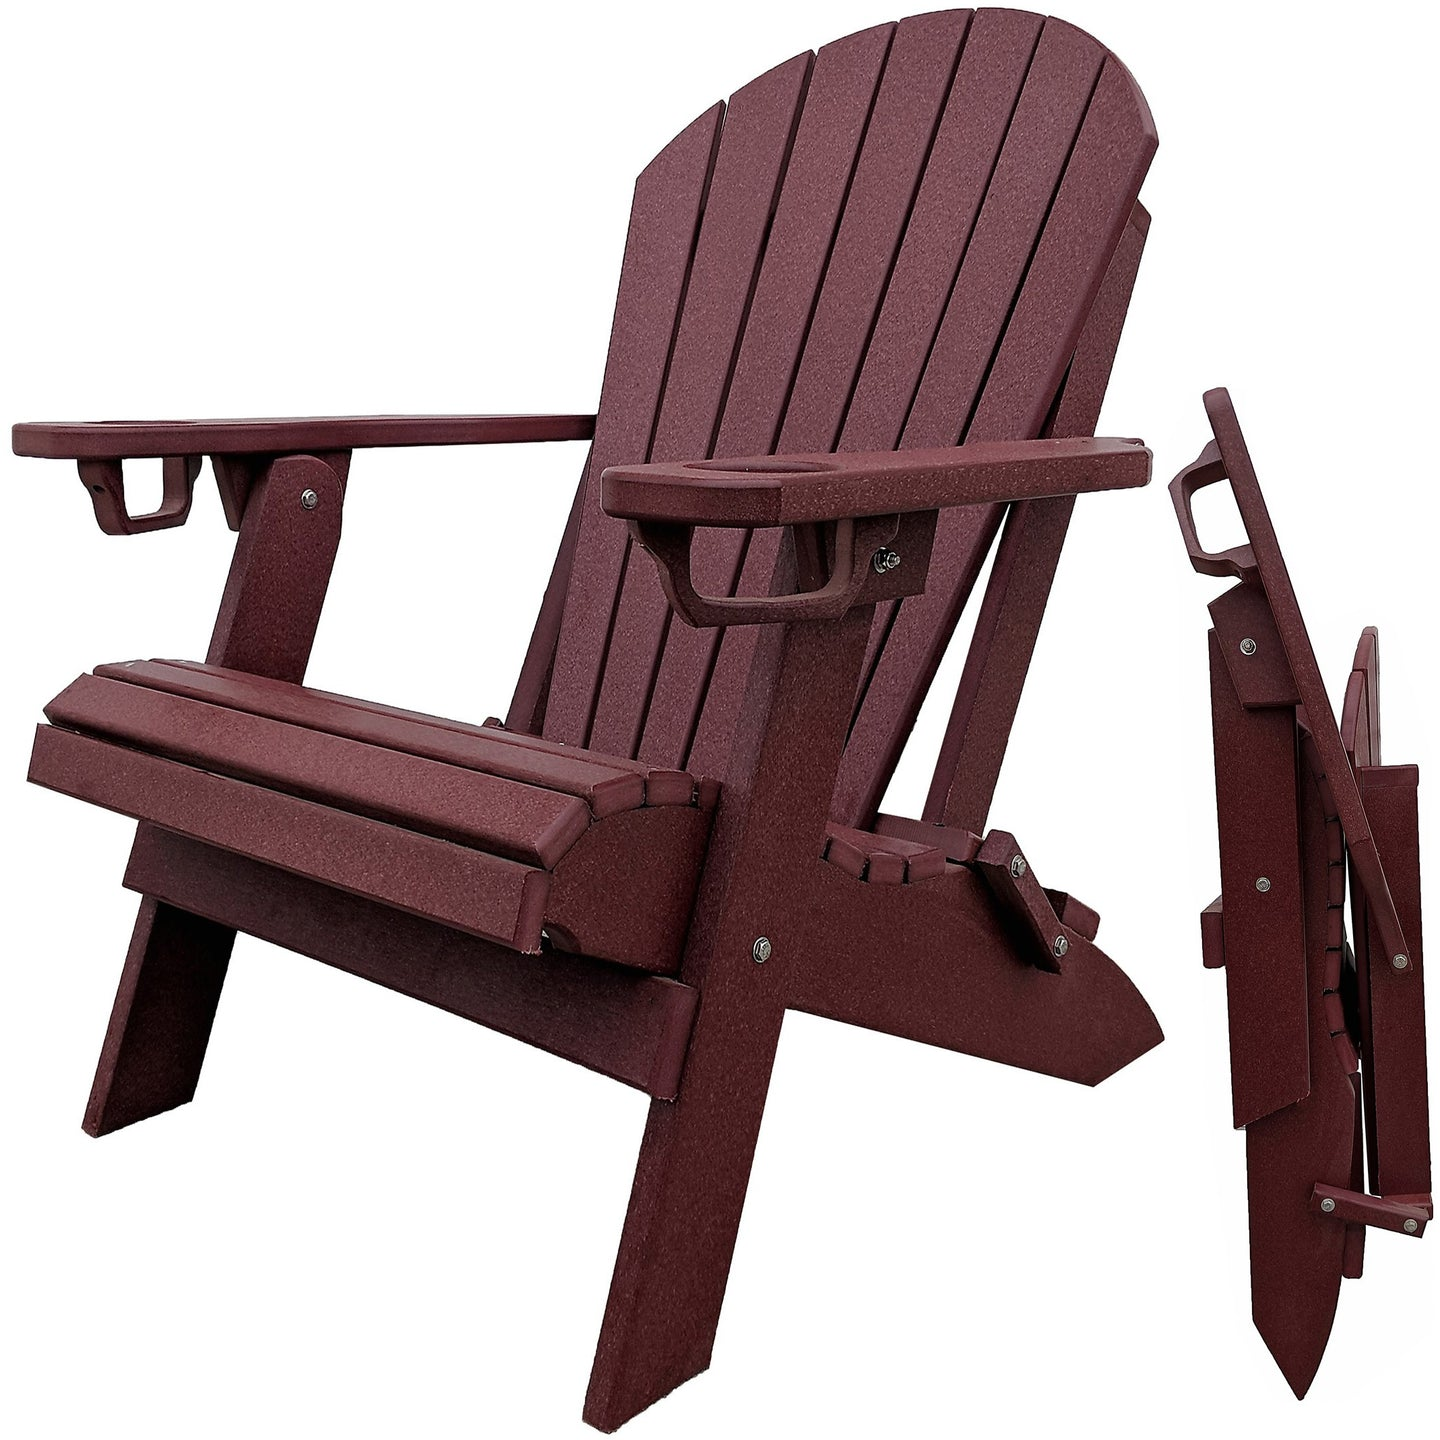 Duraweather Poly Premium Folding Adirondack Chair With Built In Cup Holders Merlot Burgundy